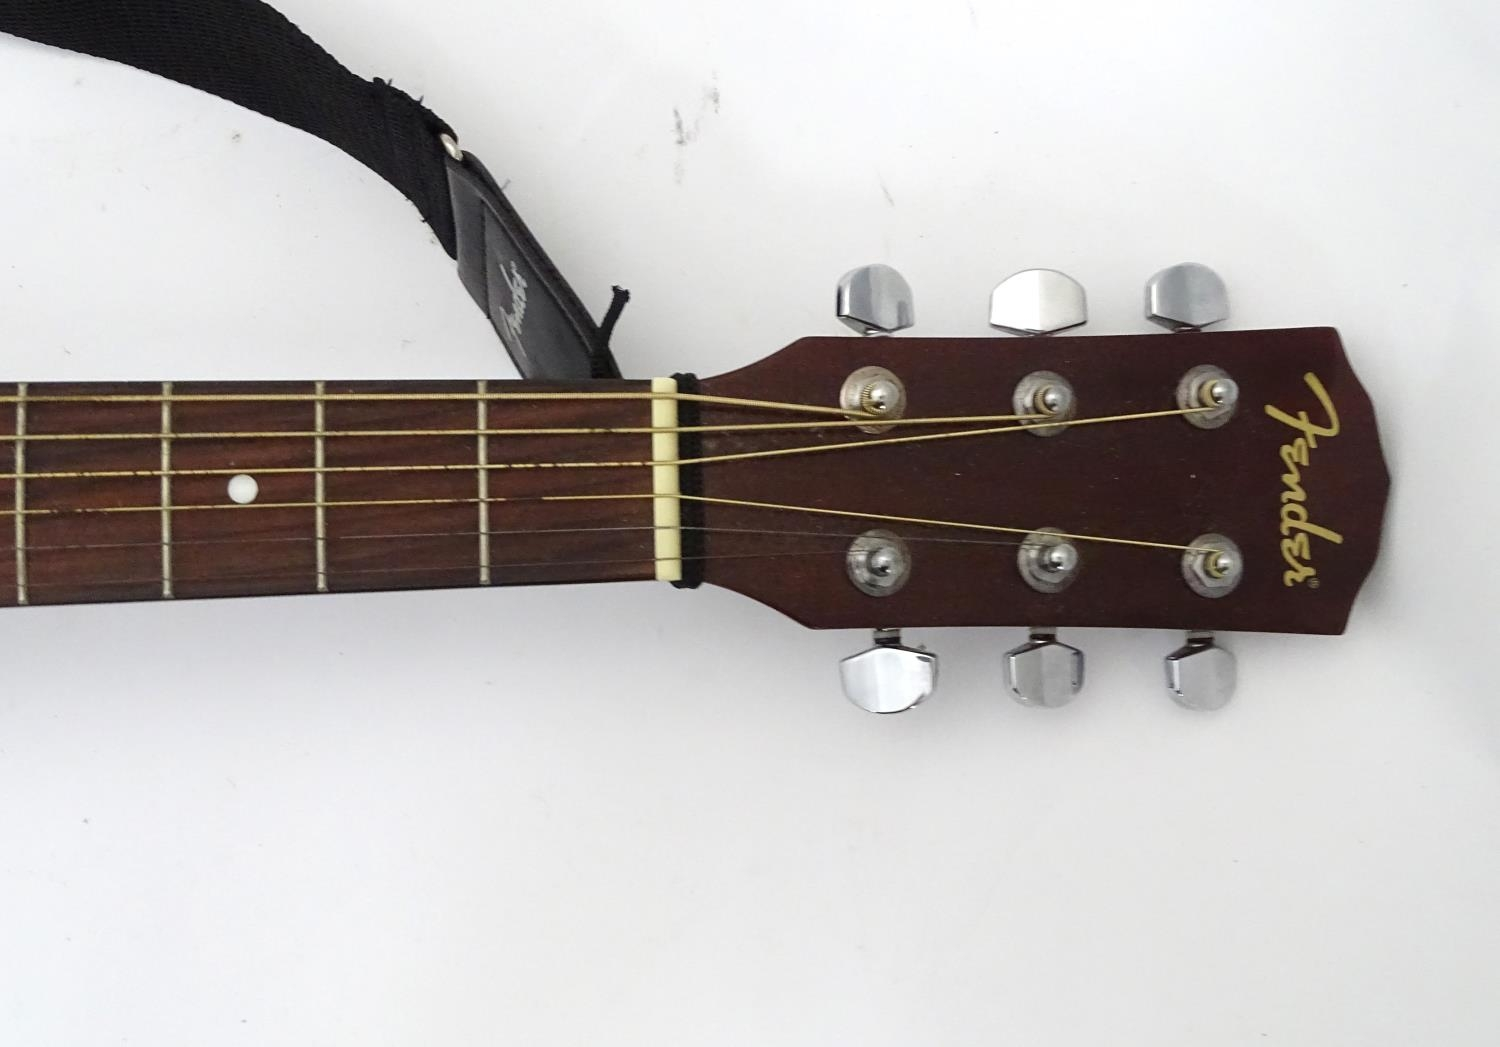 A Fender CD-60 SB acoustic guitar Please Note - we do not make reference to the condition of lots - Image 5 of 5